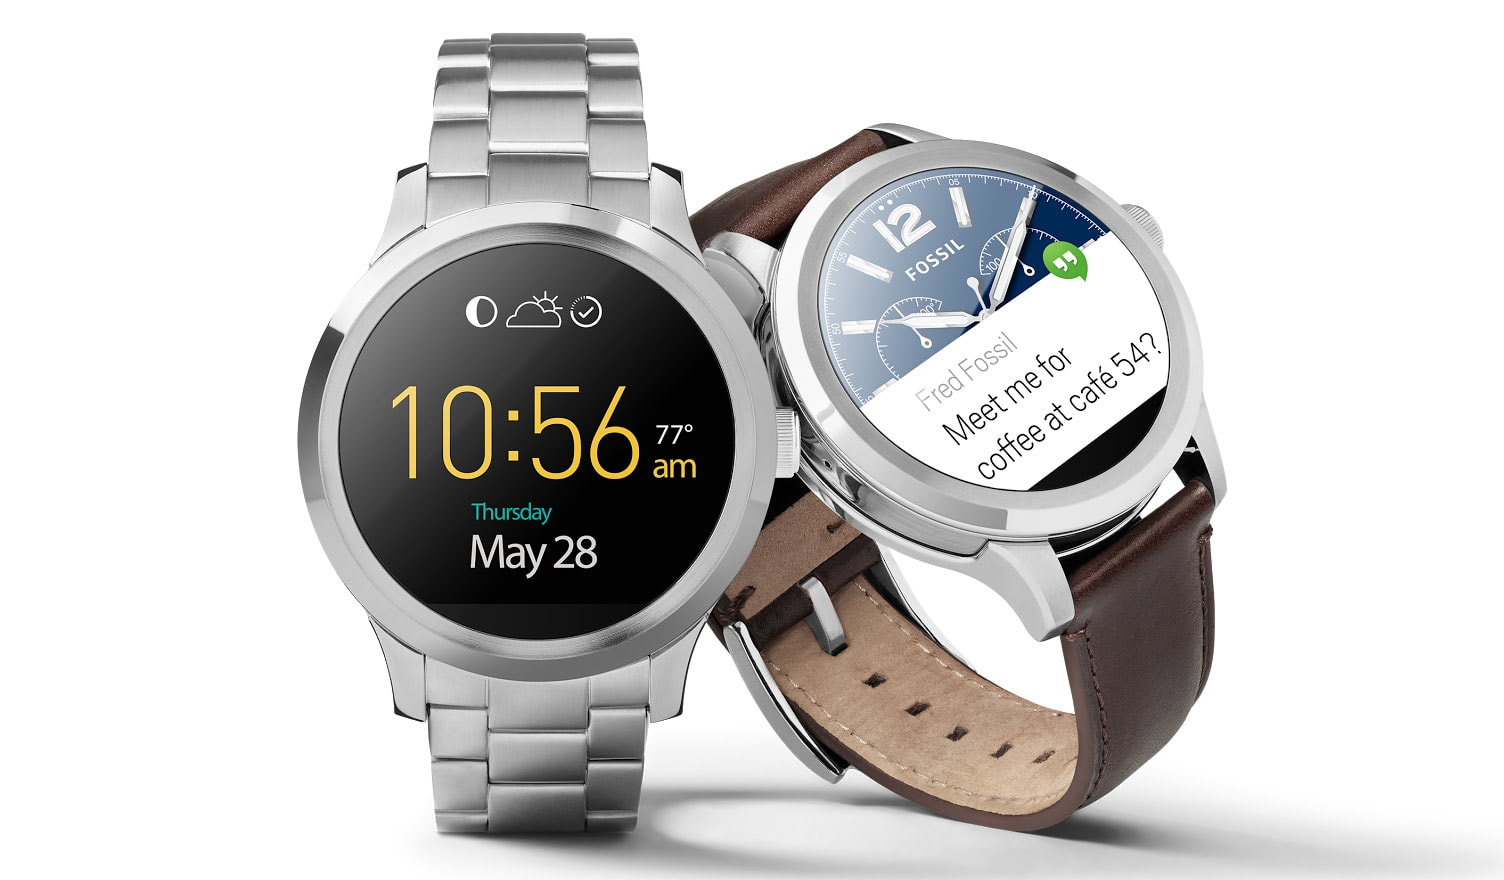 Fossil's Android Wear watch goes on sale for $275